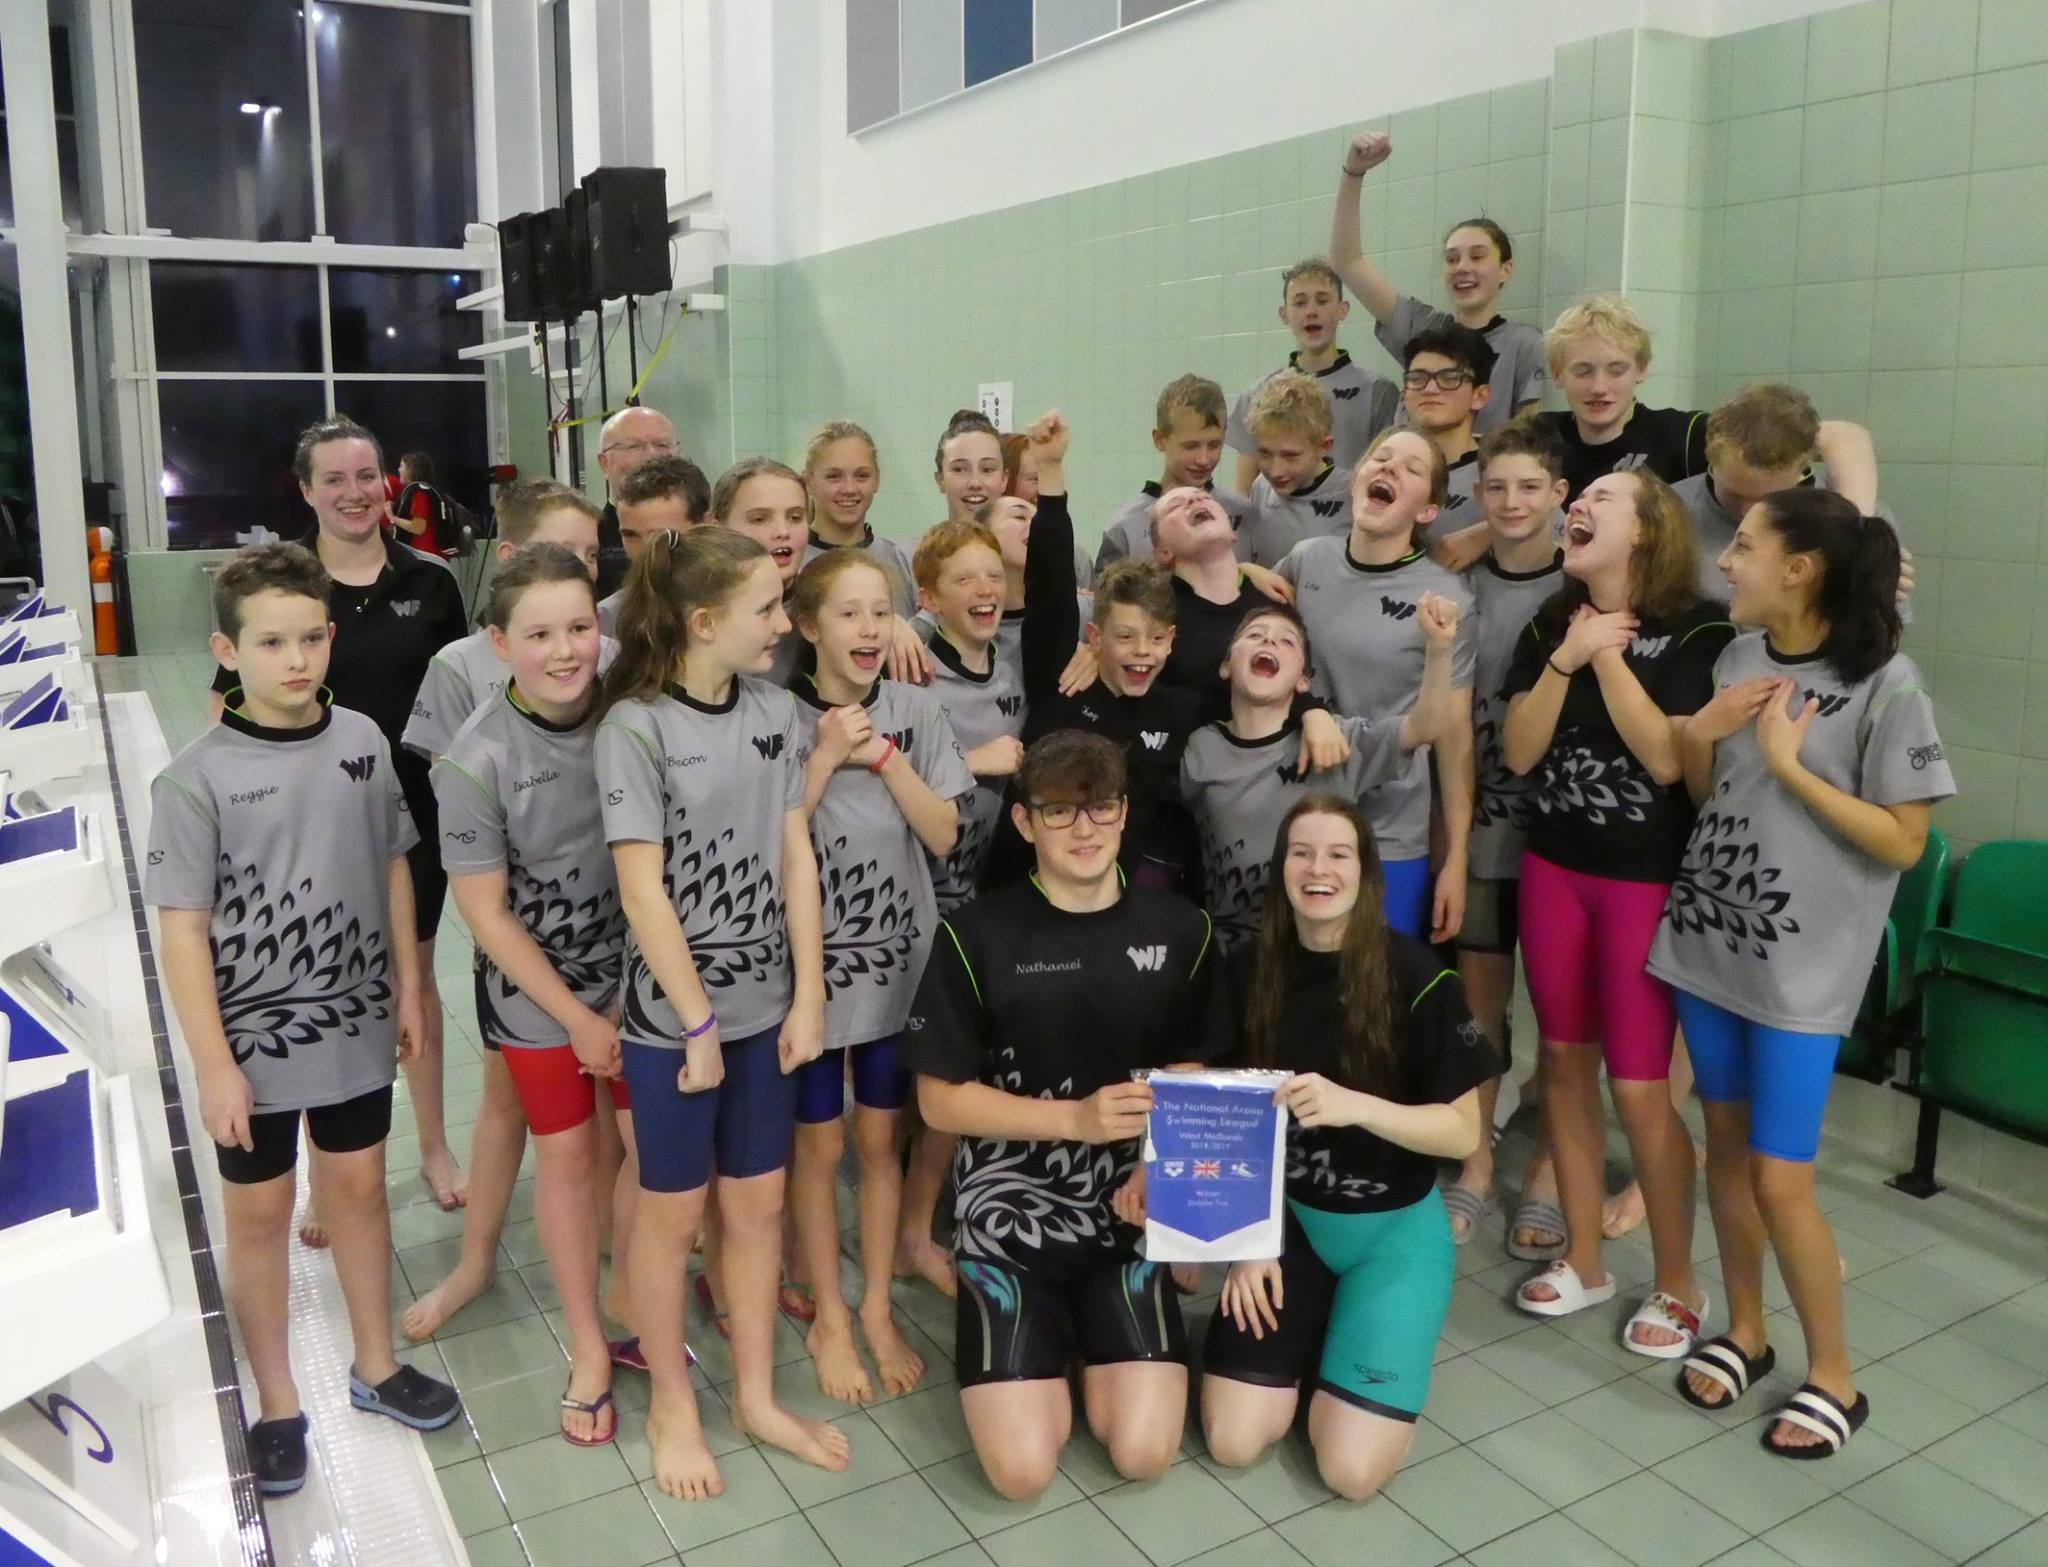 WYRE FOREST SWIMMING CLUB ARENA LEAGUE CHAMPIONS!!